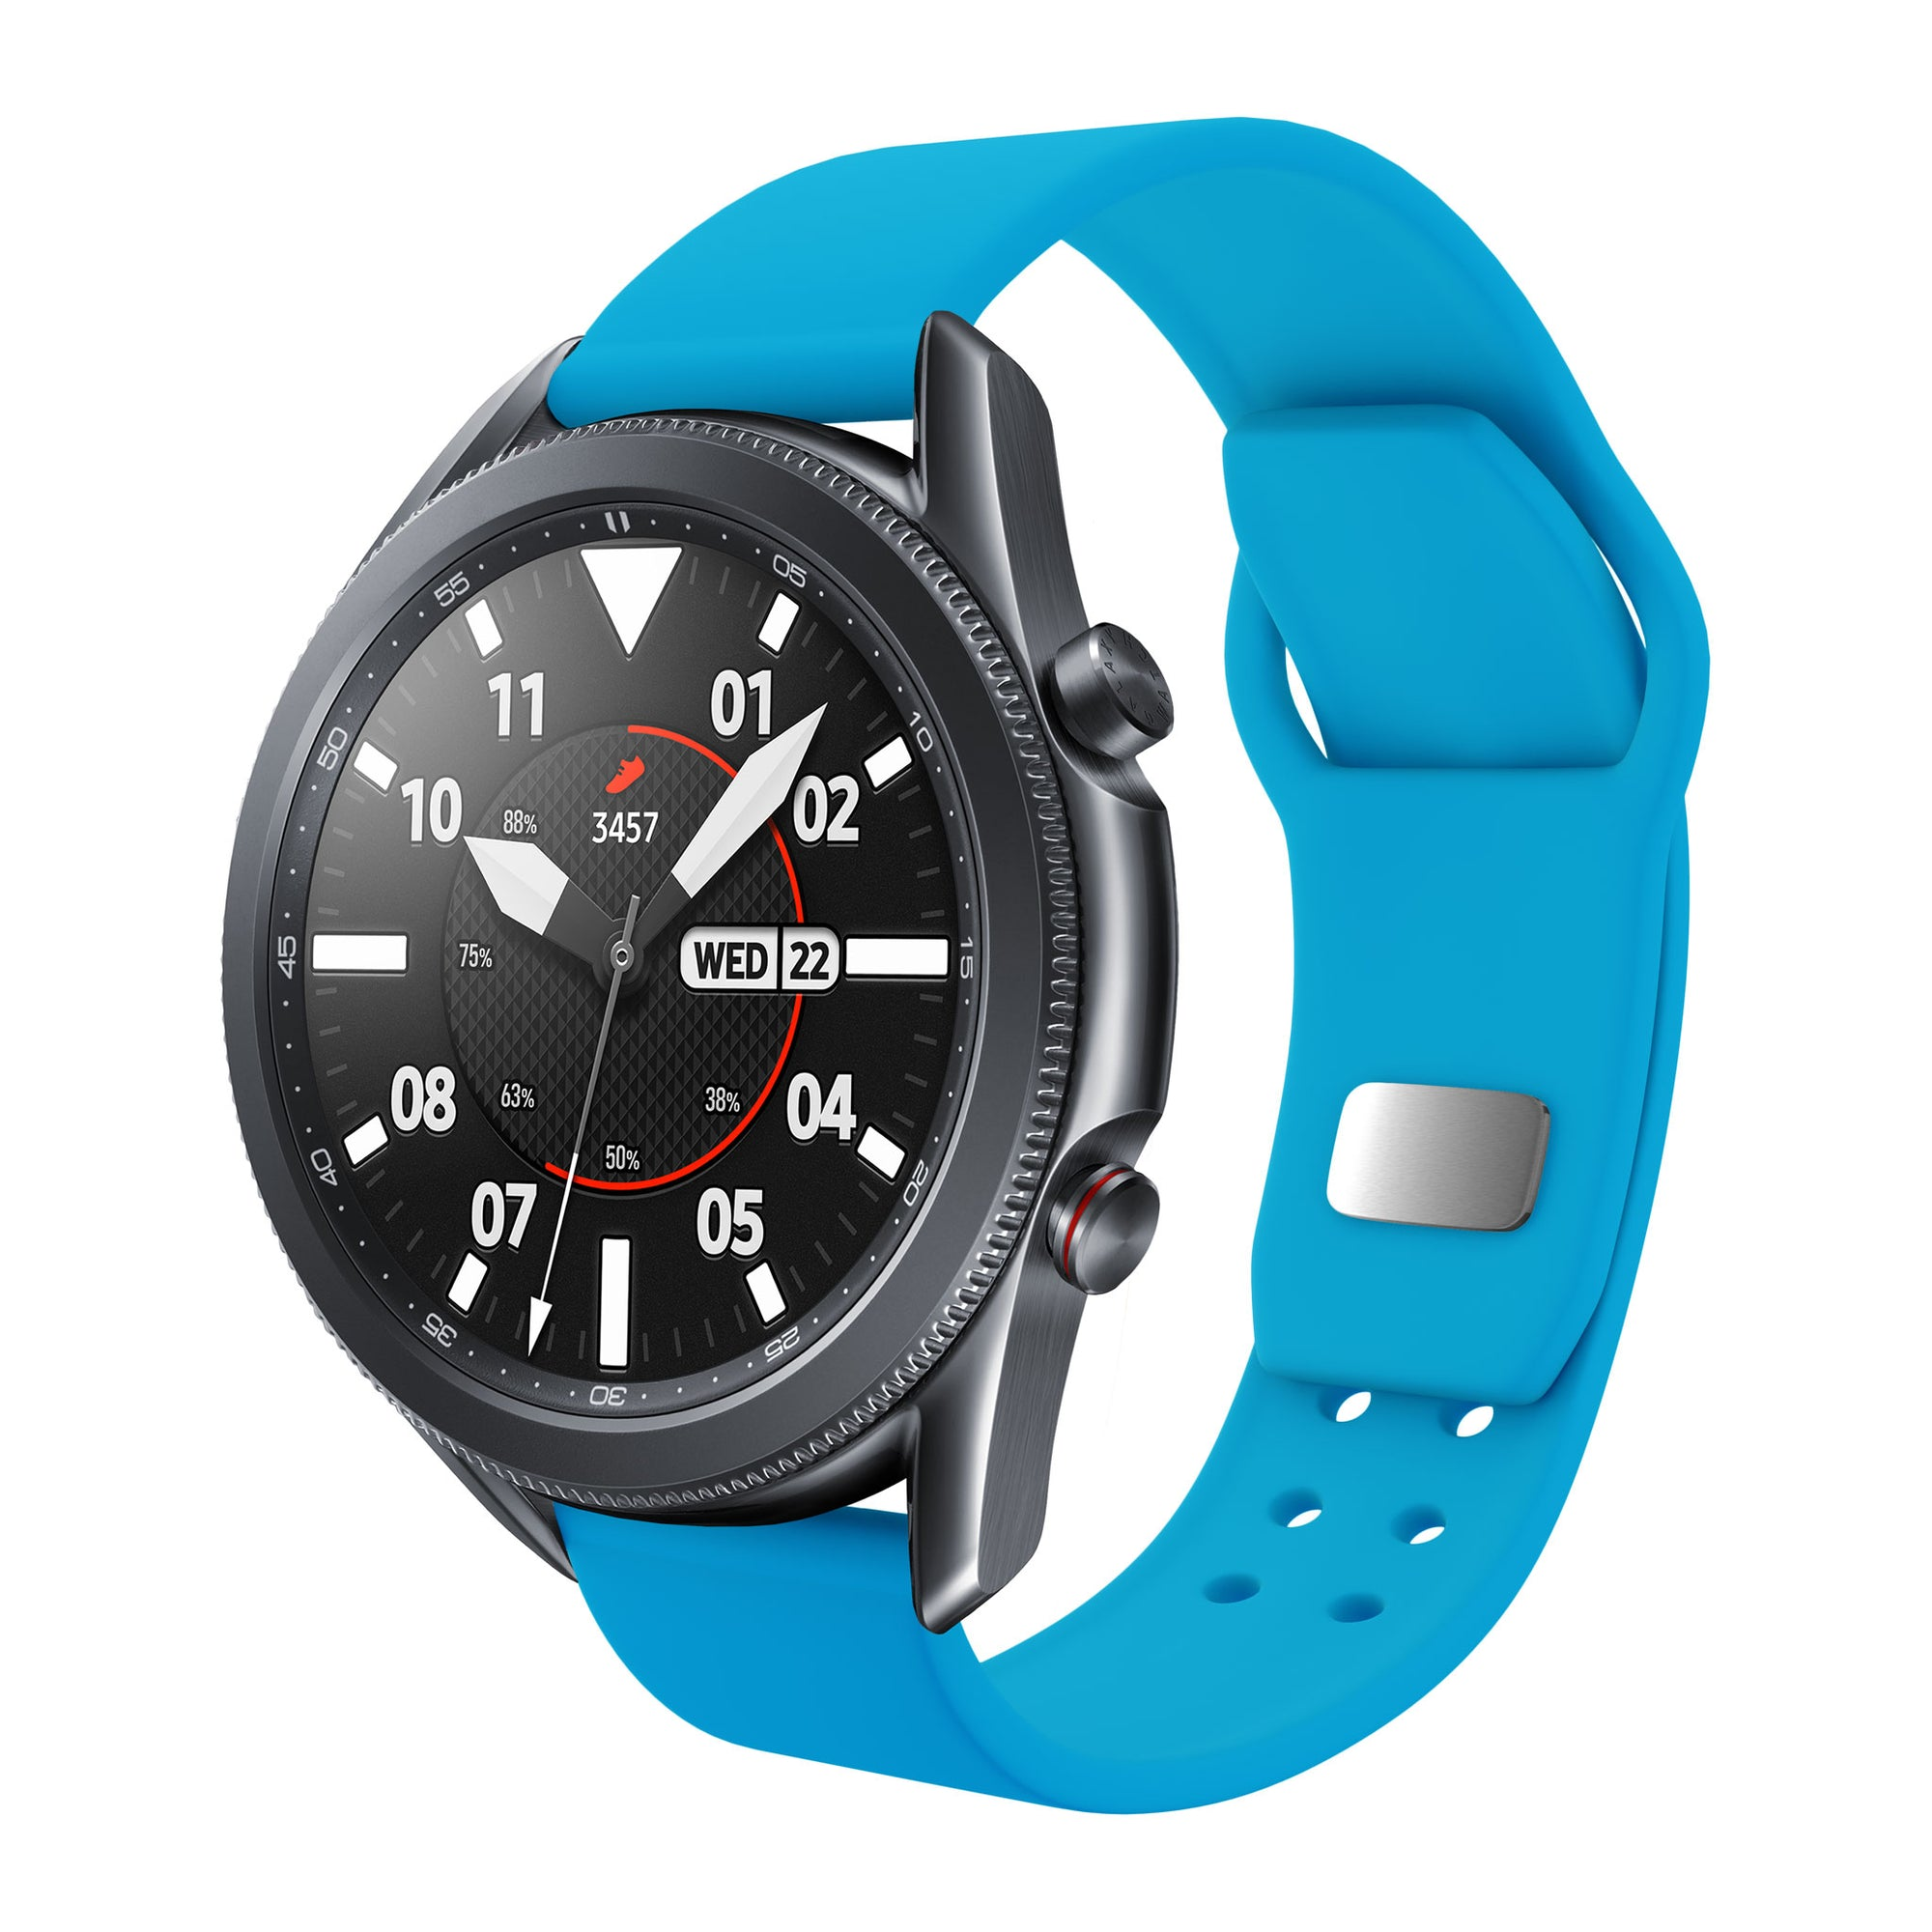 Color Quick Change Silicone Watch Bands - AffinityBands